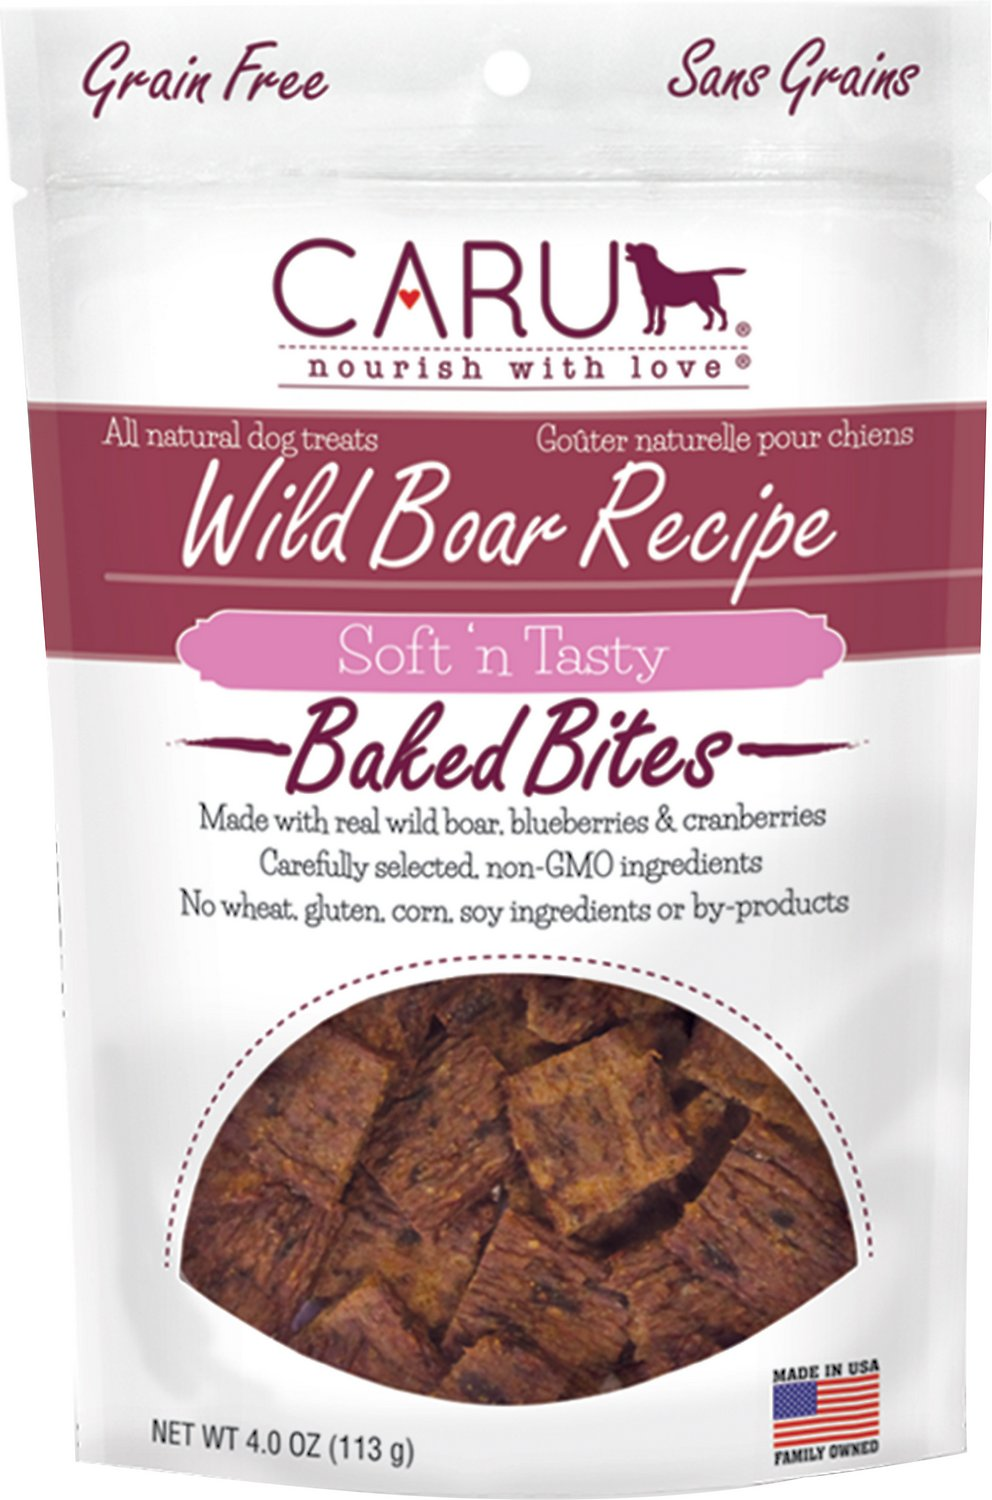 Caru Soft 'n Tasty Baked Bites Wild Boar Recipe Grain-Free Dog Treats, 4-oz bag